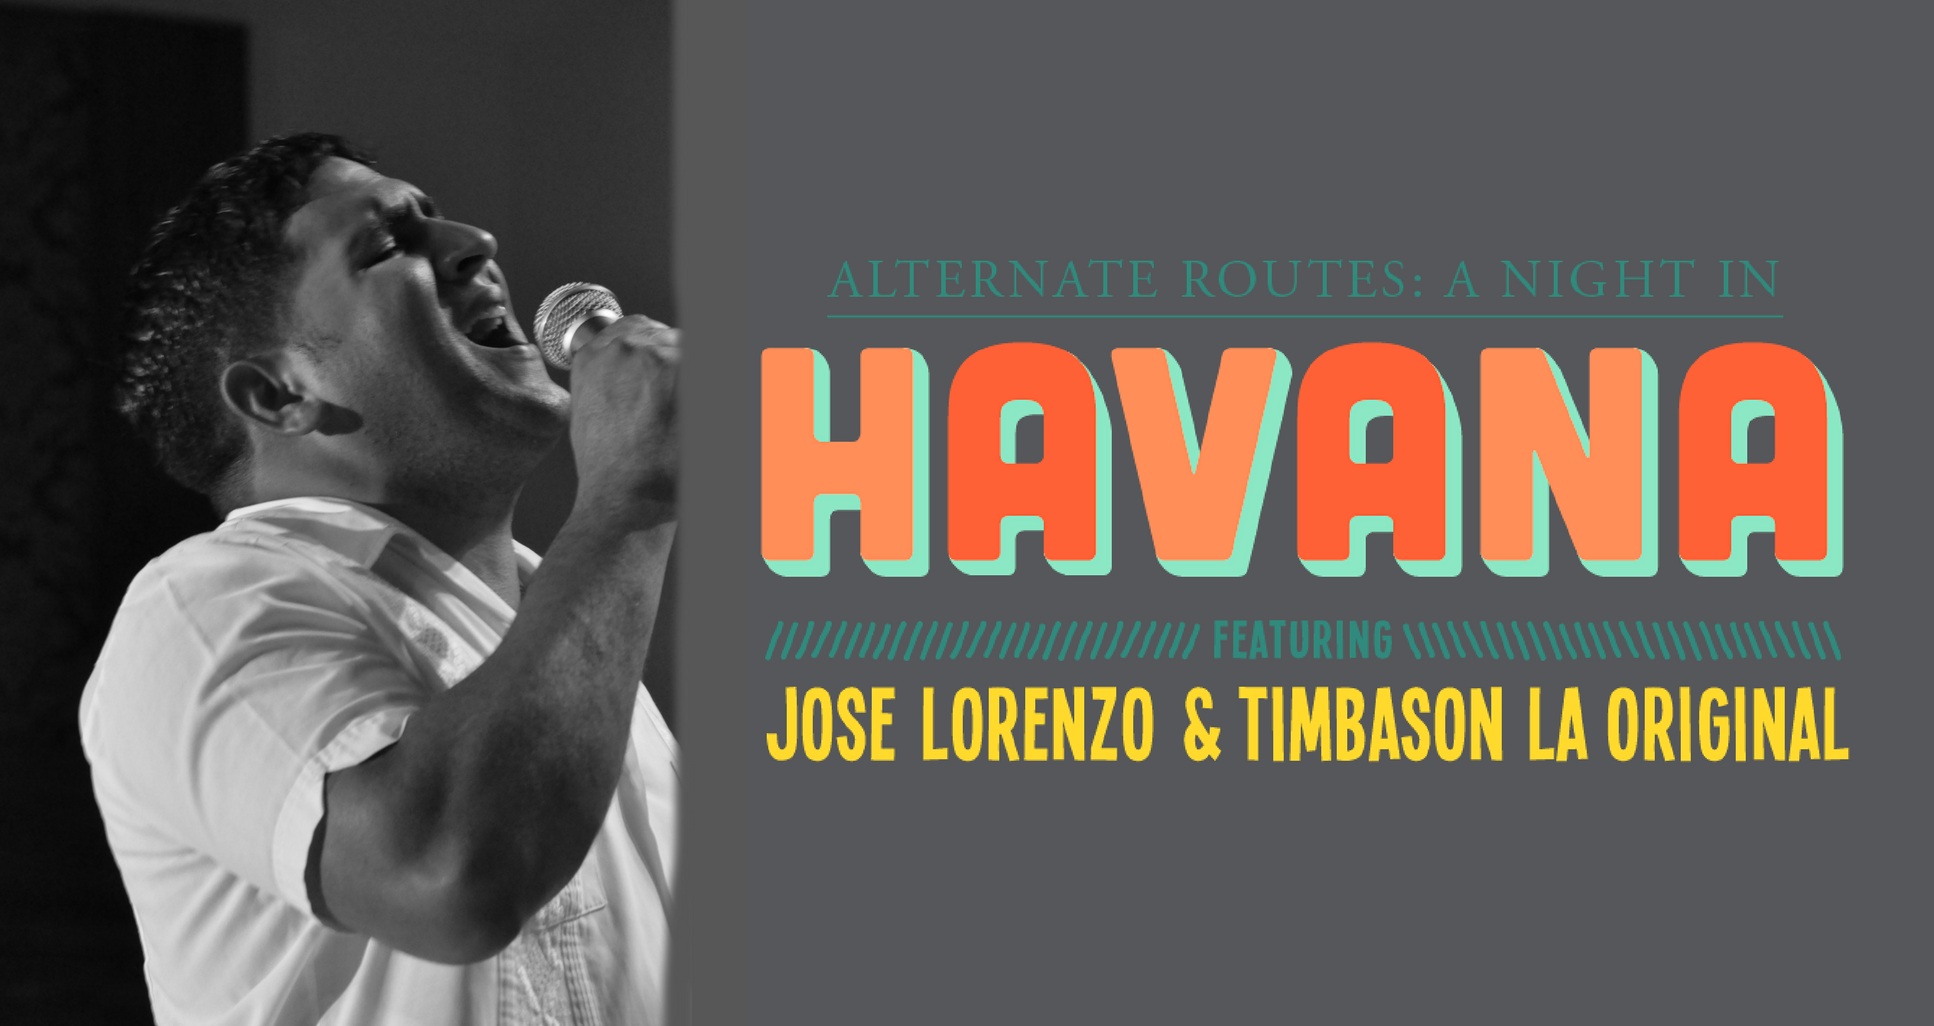 Alternate Routes: A Night in Havana